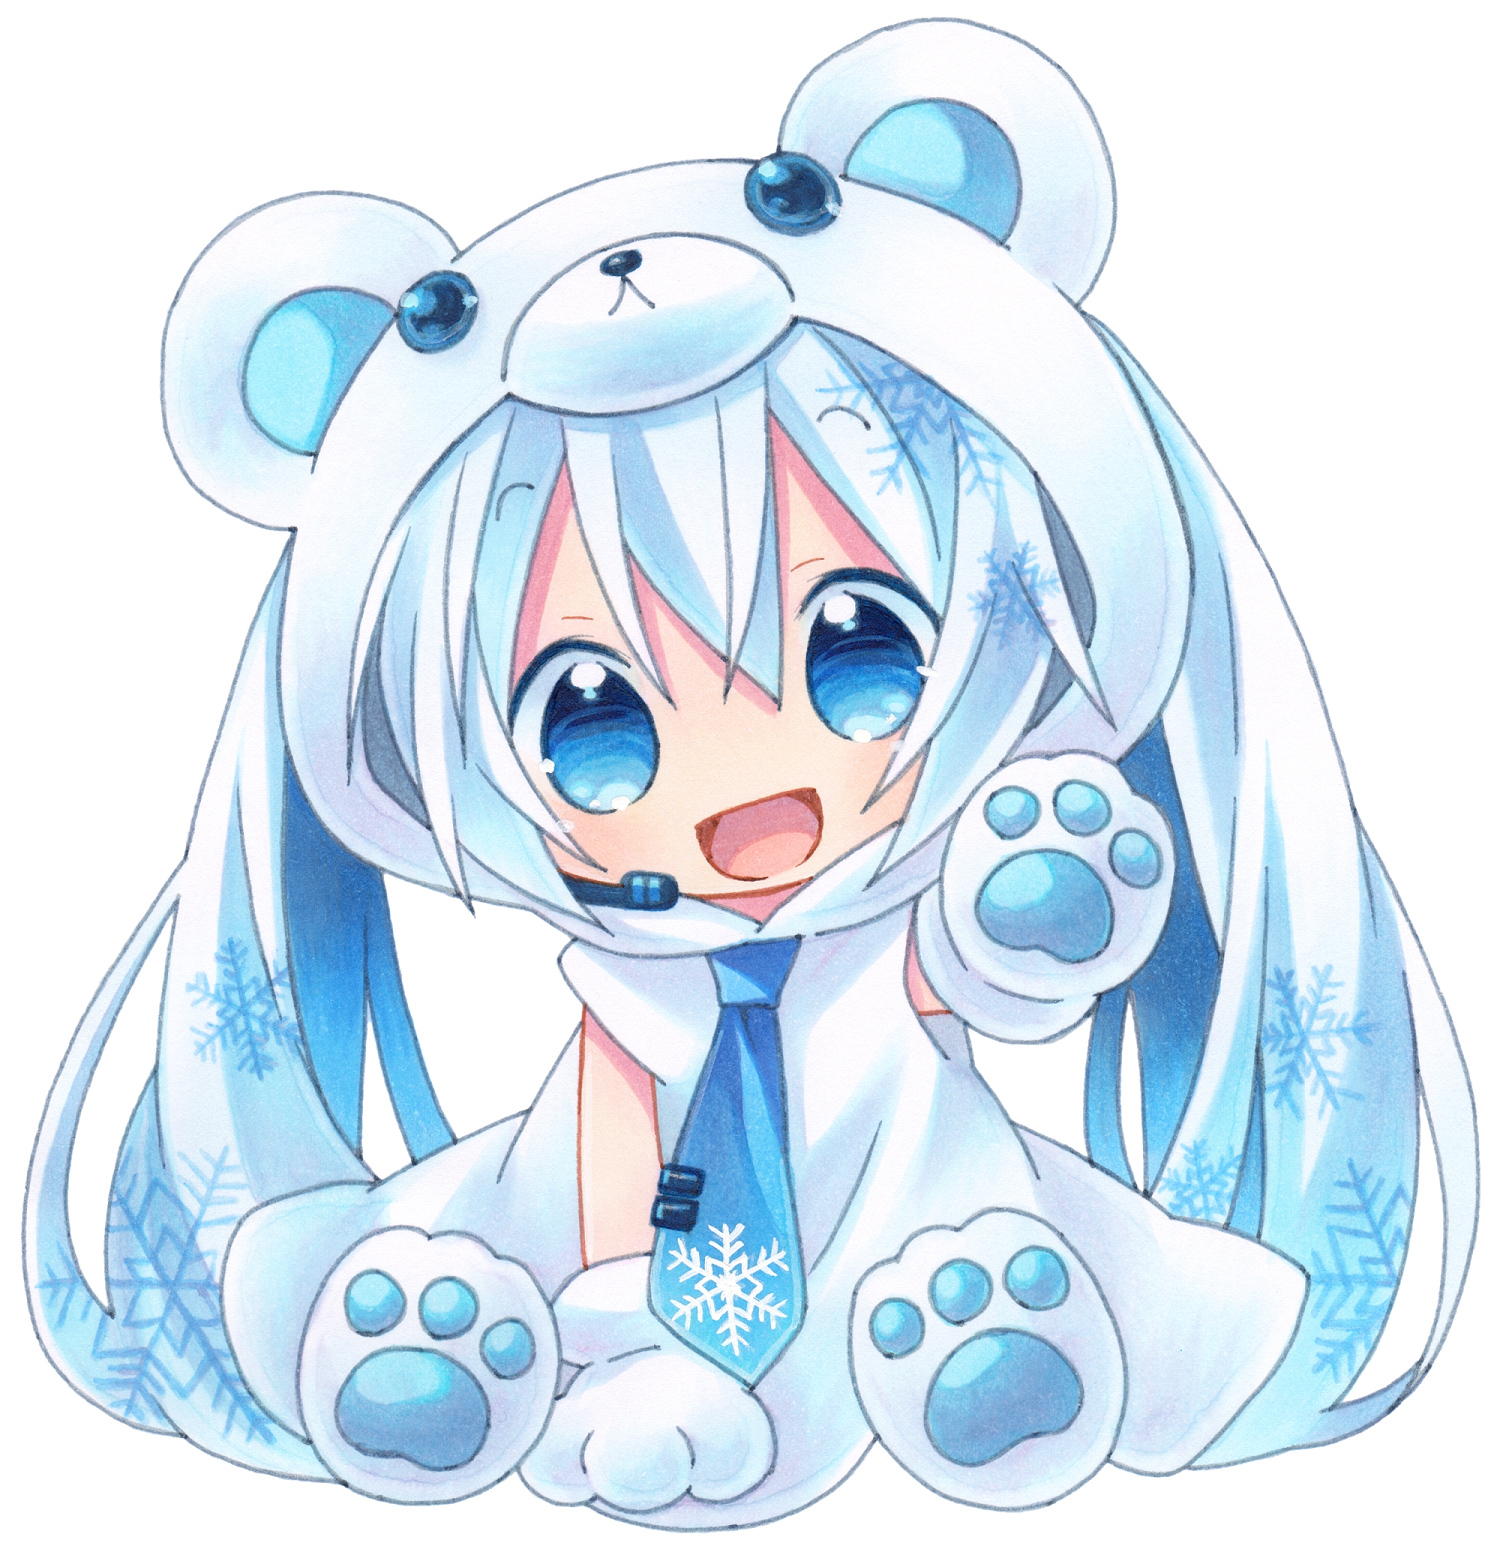 Teddy Miku is cute too